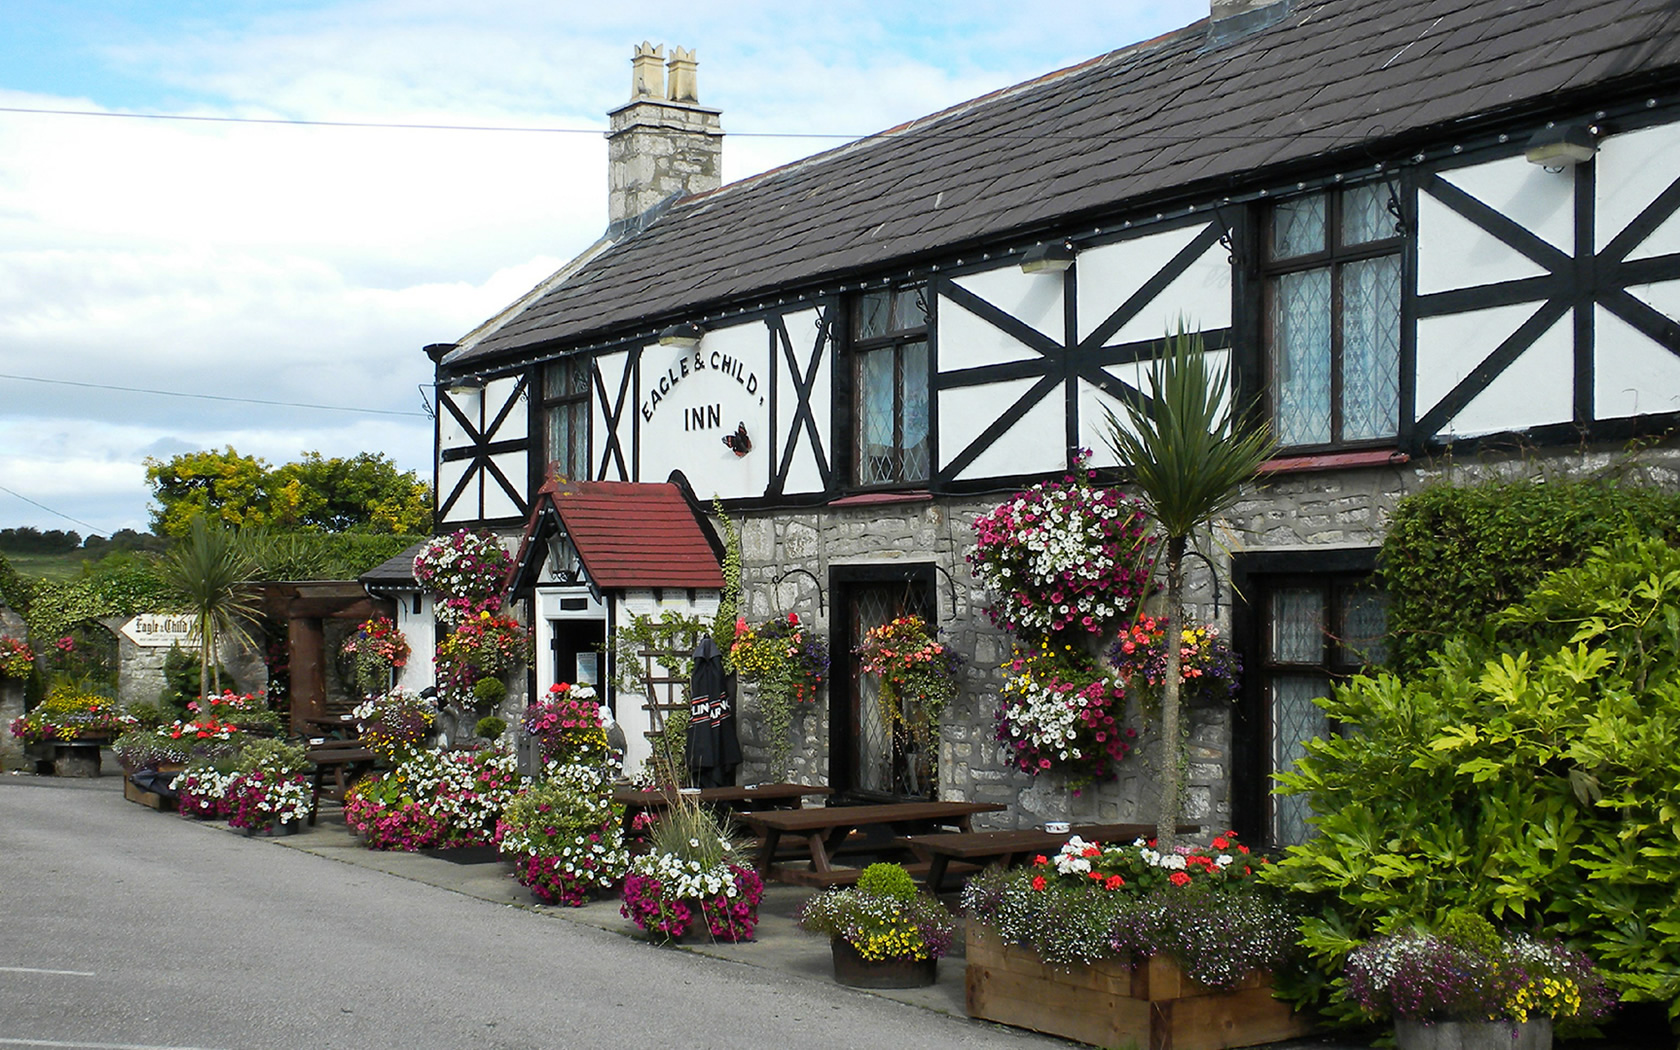 Eagle and Child Inn